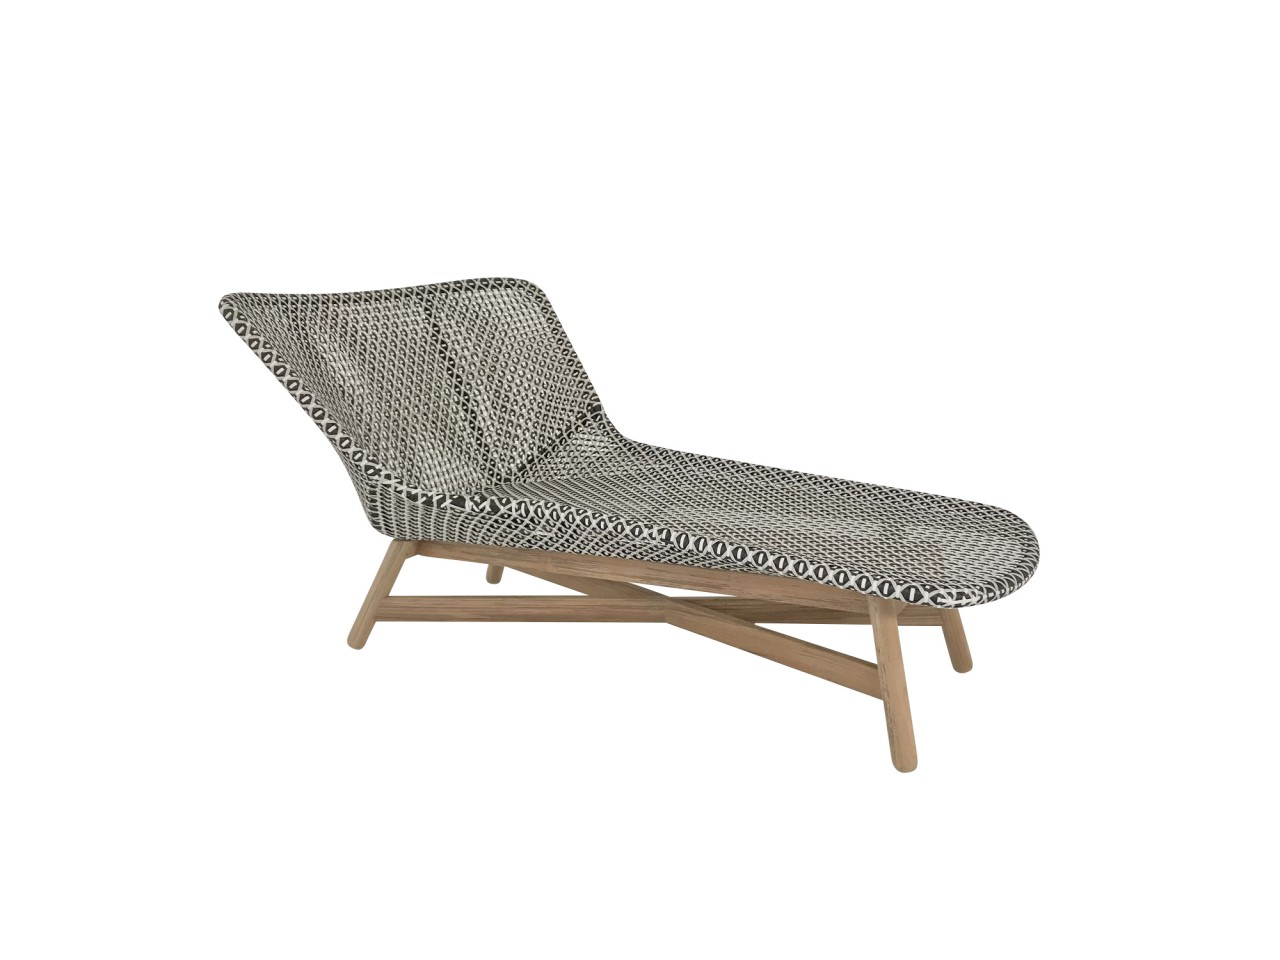 Dedon Mbrace Dedon Mbrace Daybed Liege In Der Farbe Pepper Dedon